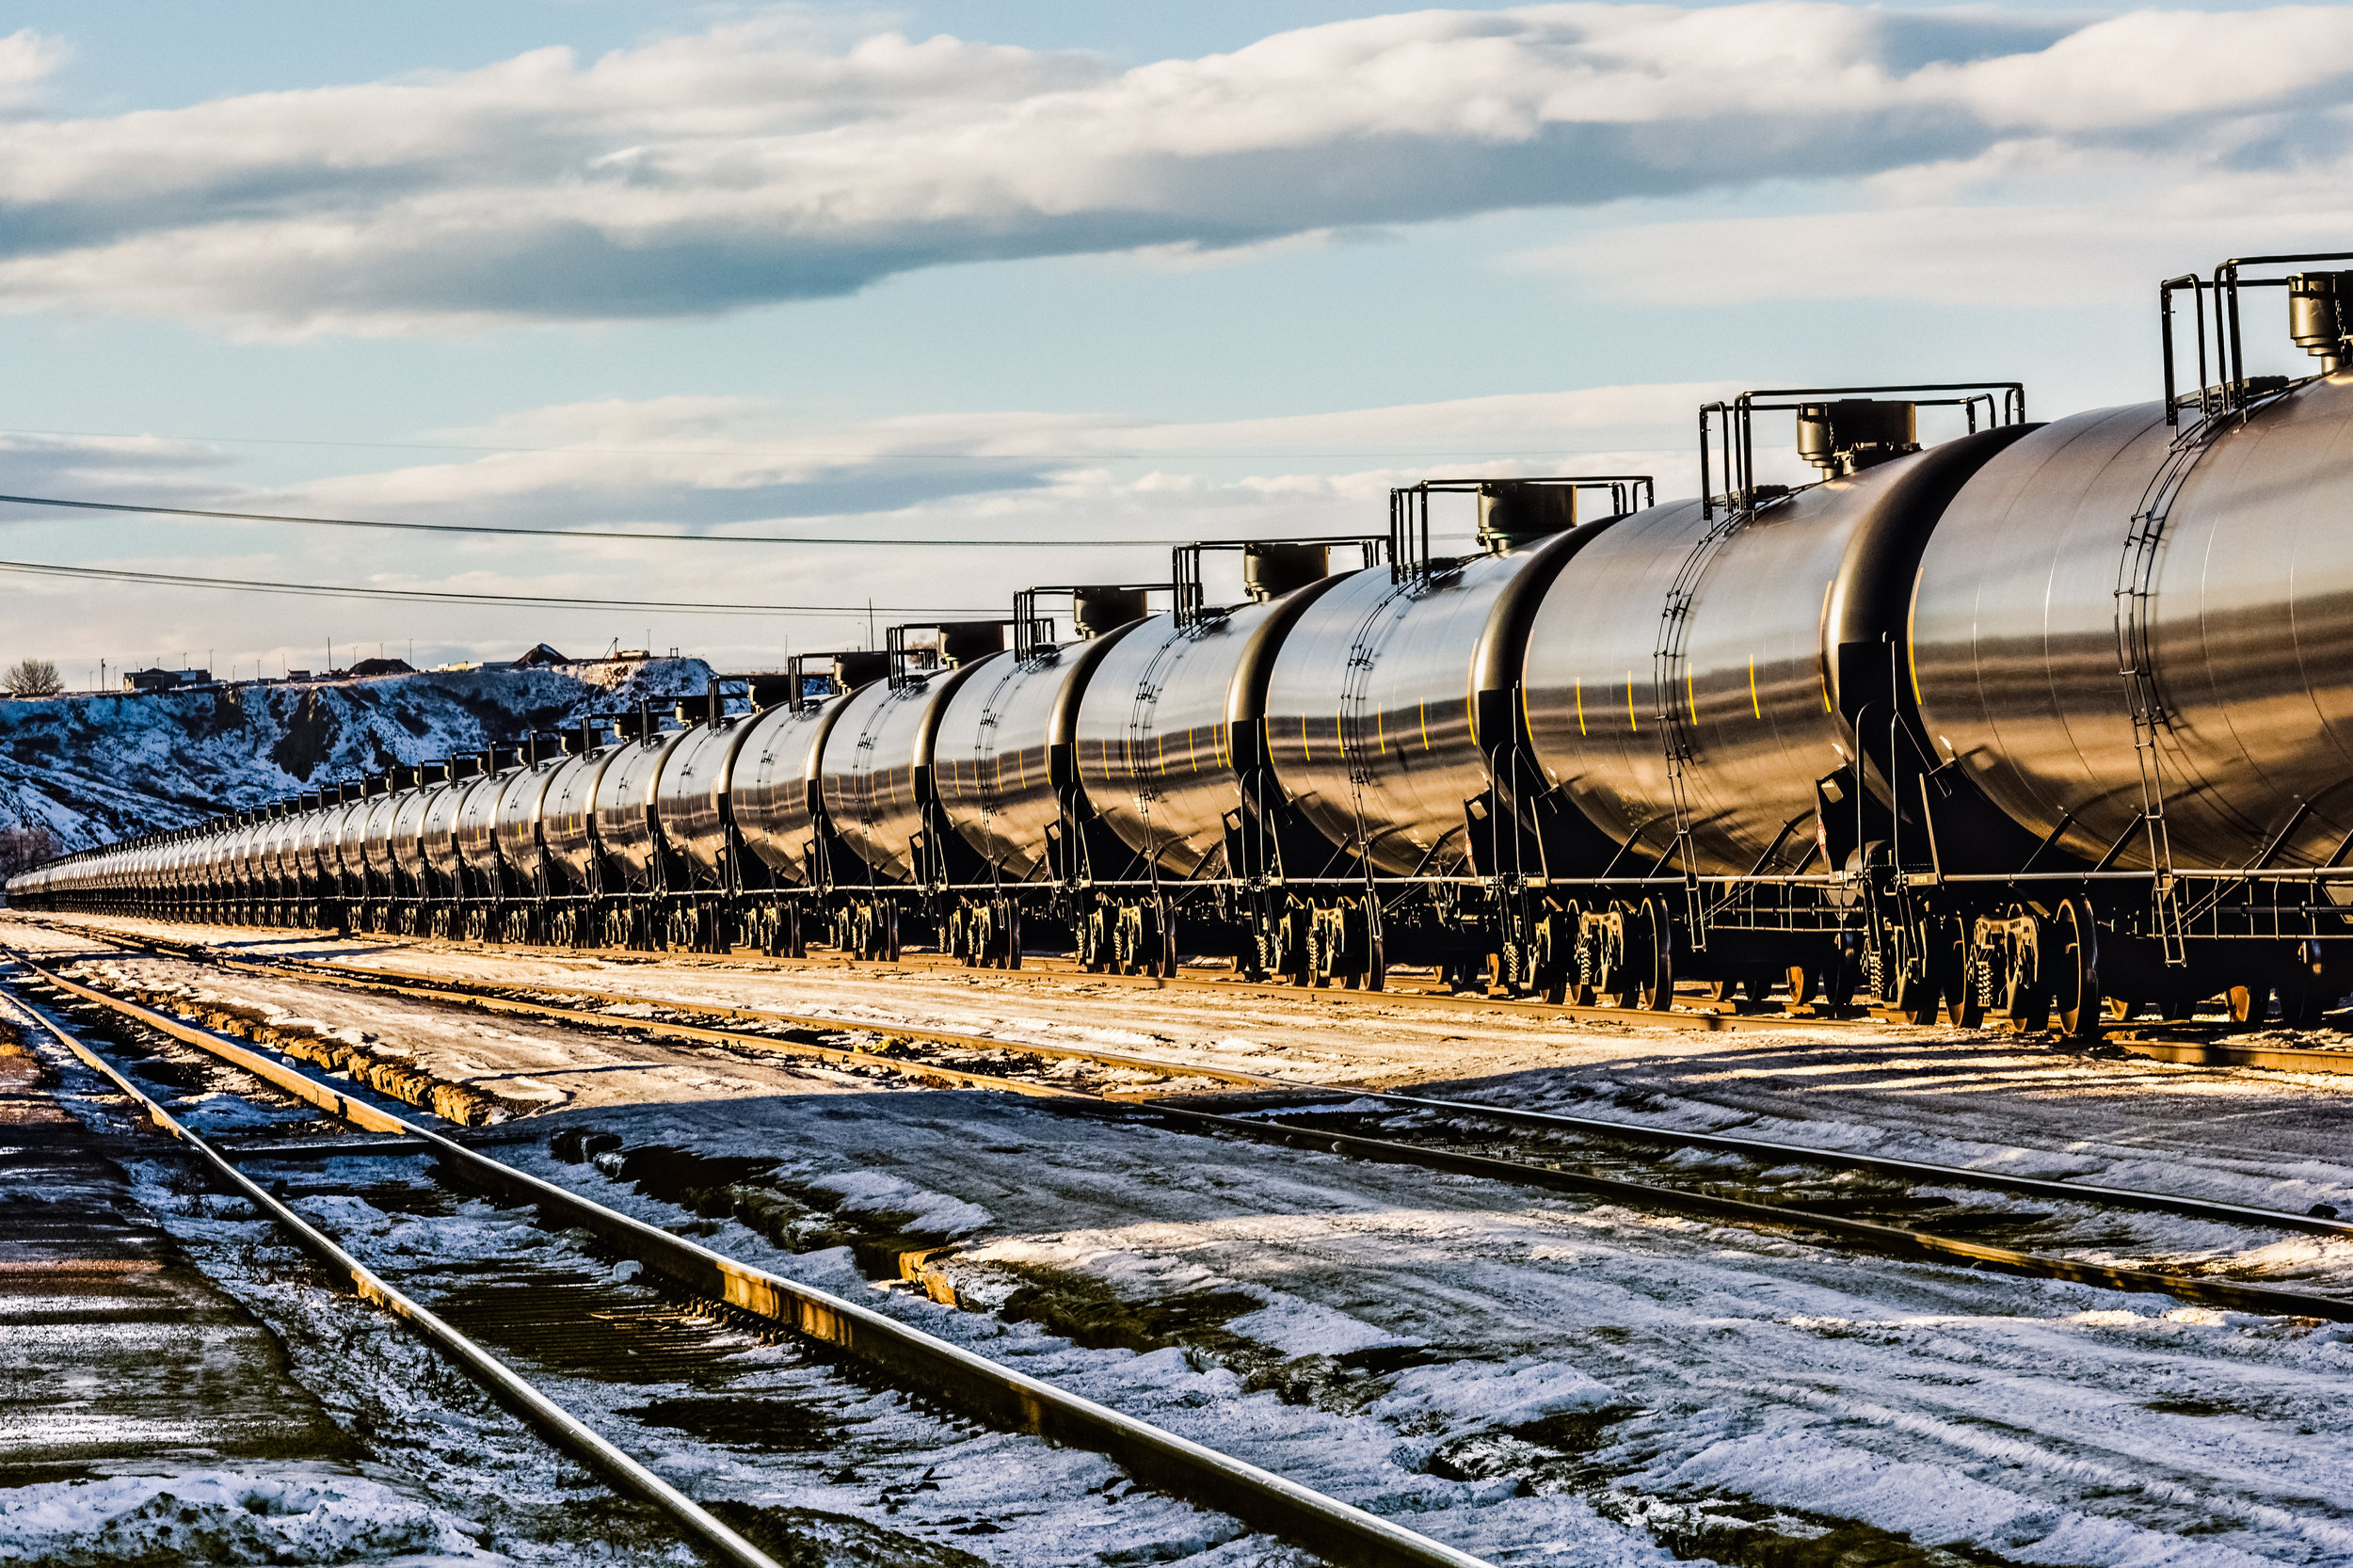 Oil-train-passing-through-a-Montana-railyard-from-North-Dakota-494906828_3869x2579.jpeg